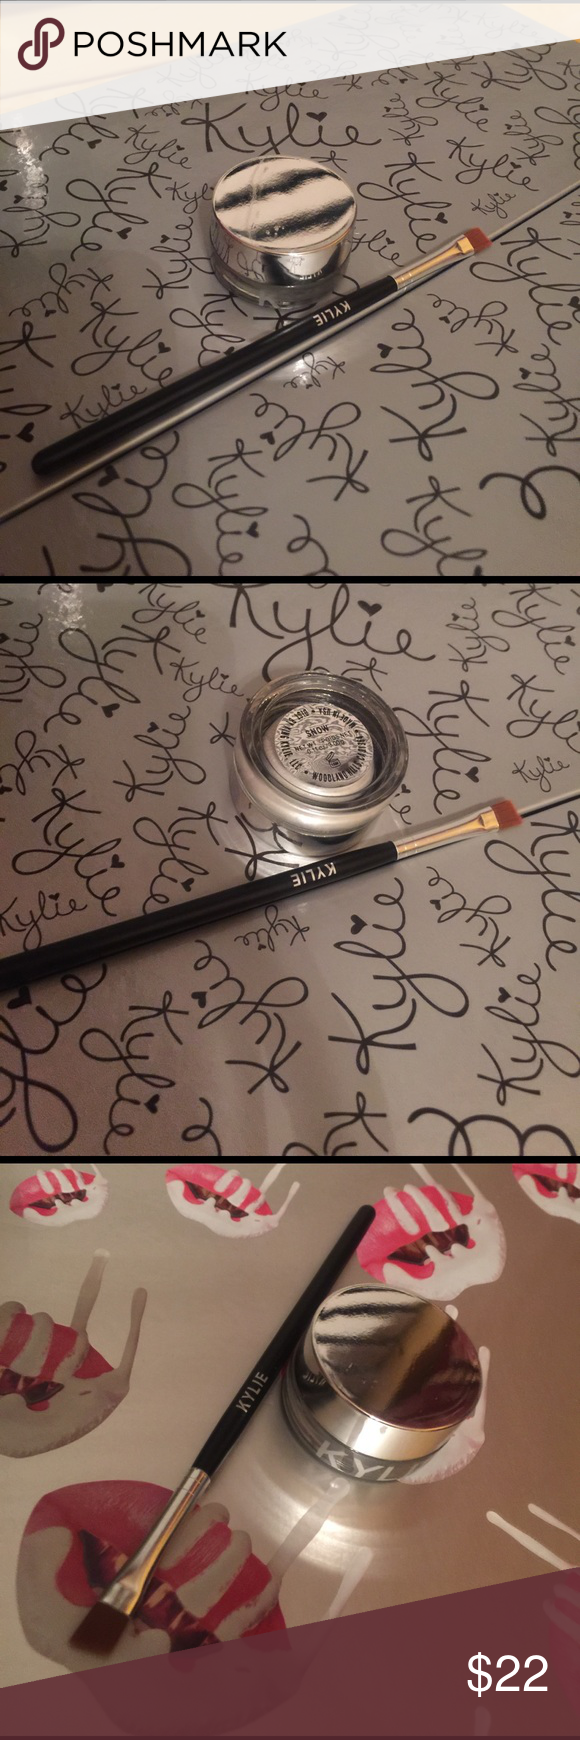 Kylie Snow Gel Liner and brush New, part of holiday collection. 100% authentic. Kylie Cosmetics Makeup Eyeliner